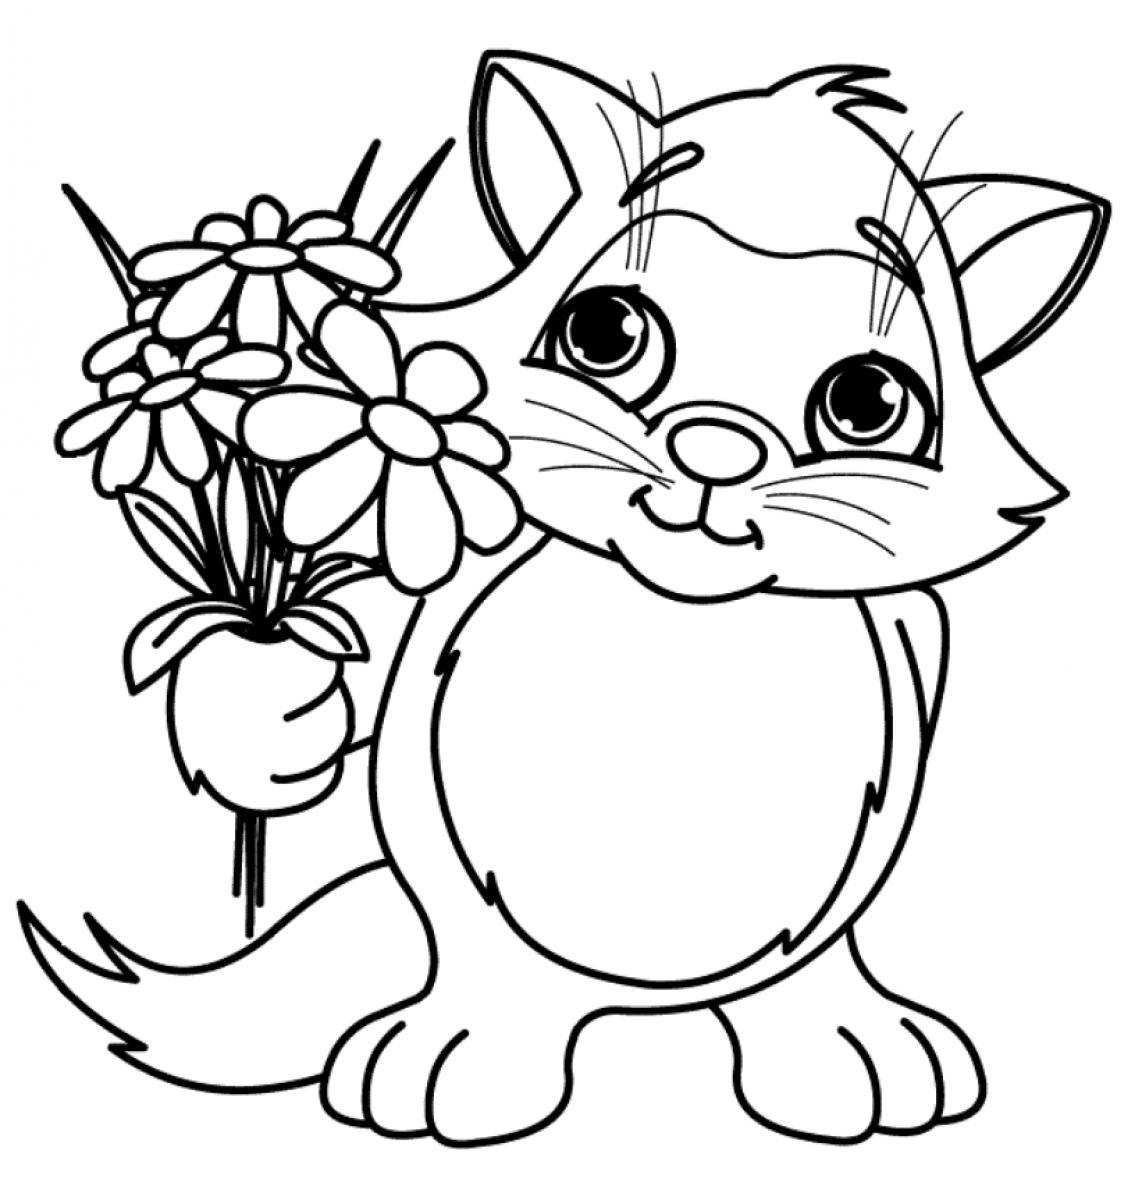 24 Spring Flowers Coloring Pages Selection | FREE COLORING PAGES ...